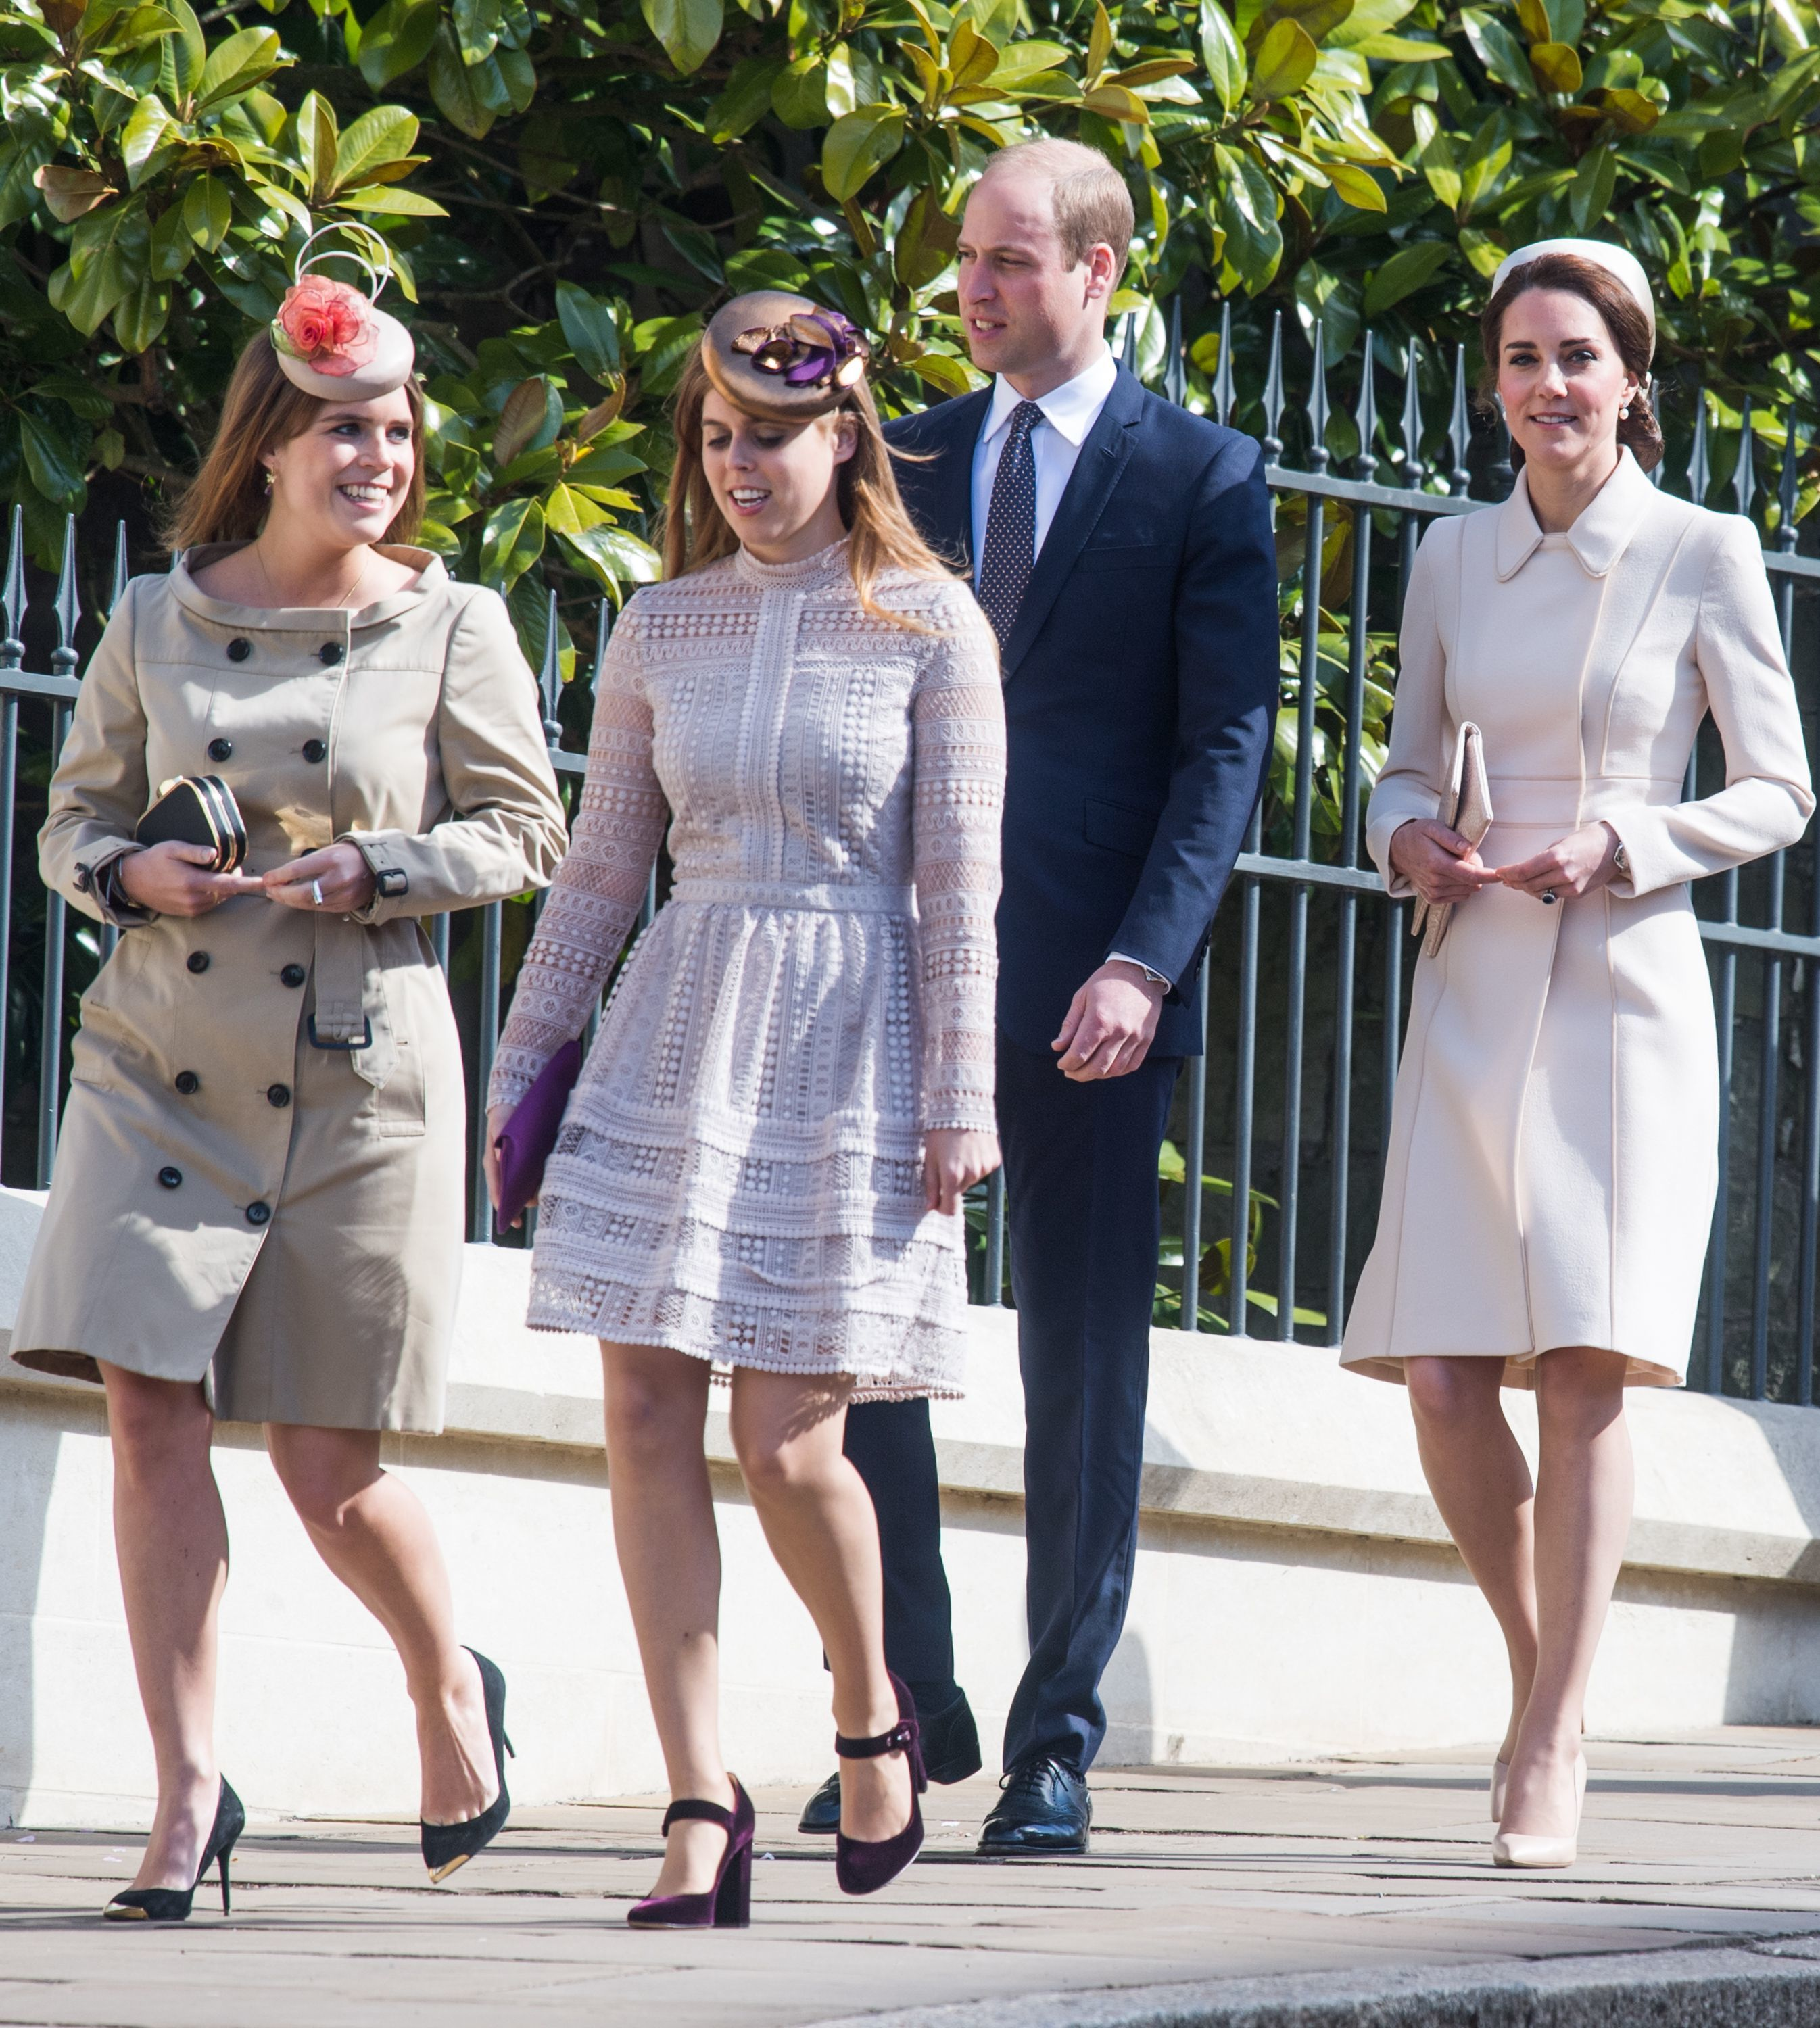 The Royal Family Spend Easter Sunday At Windsor Castle